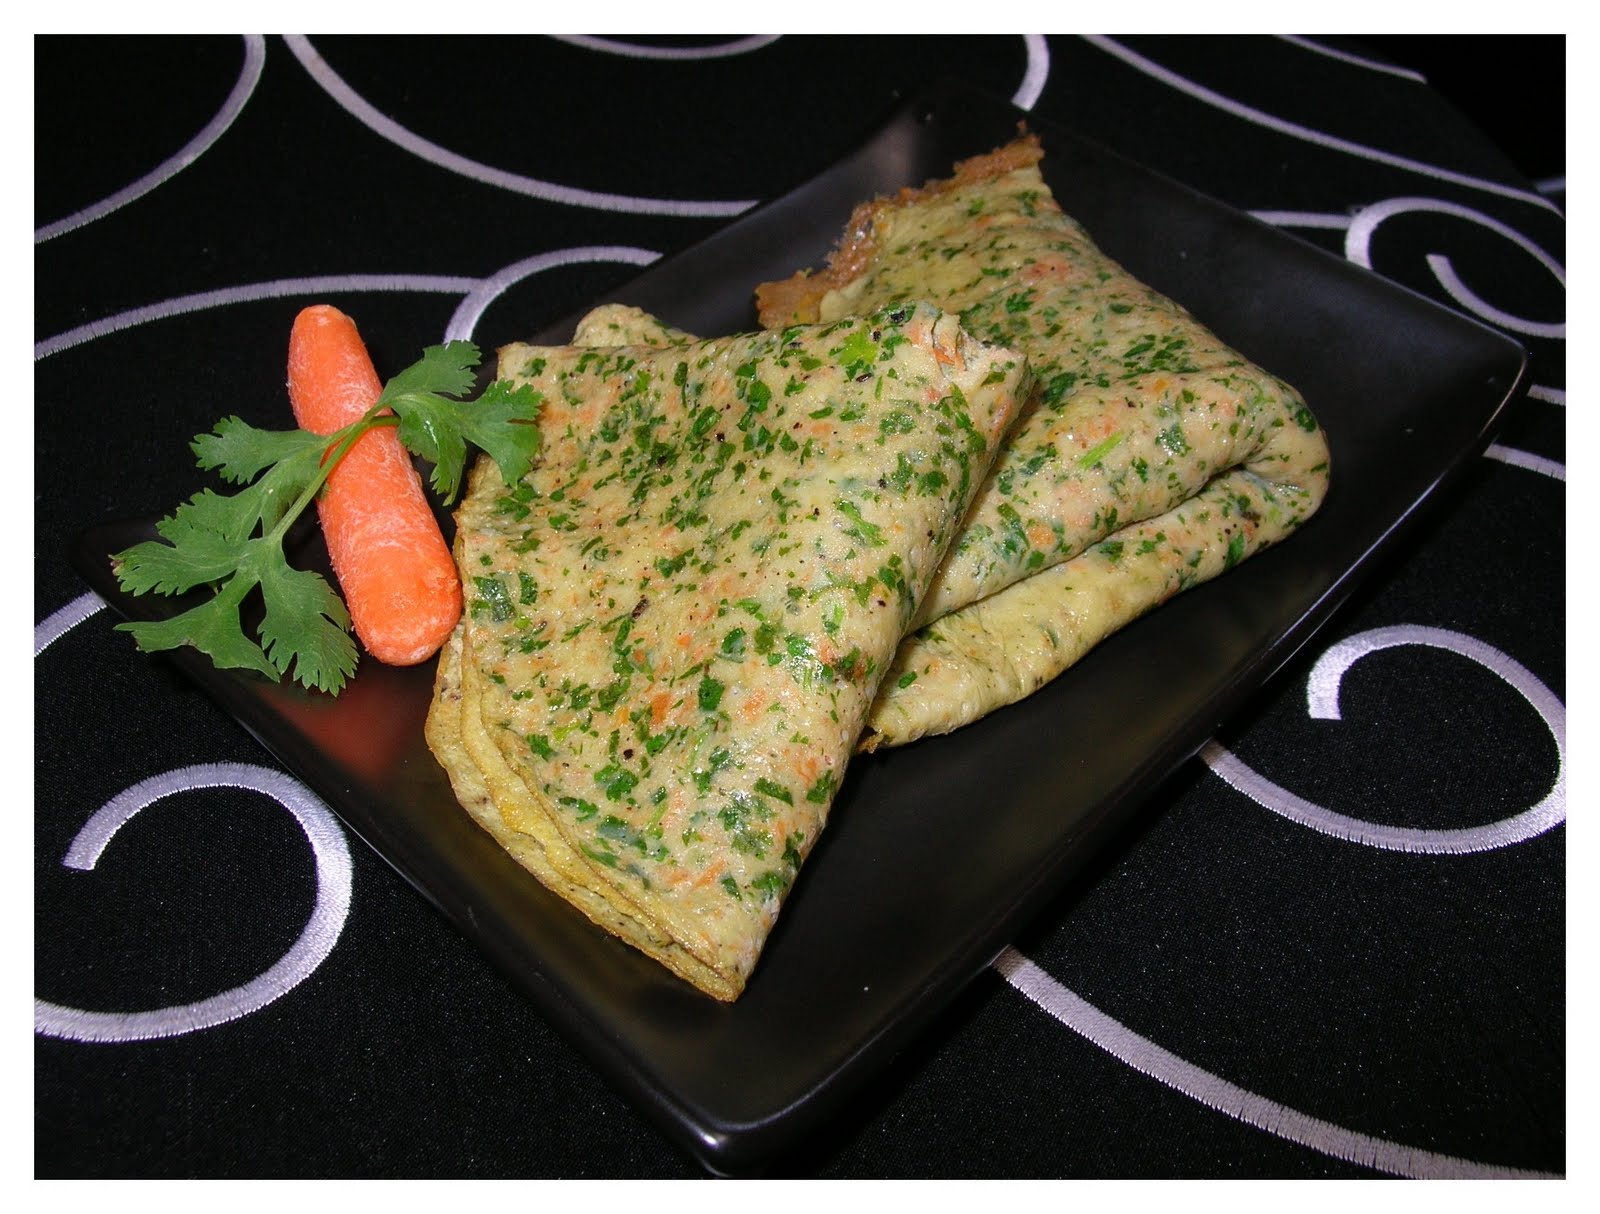 The True Taste Of China Cilantro And Carrot Egg Pan Cake